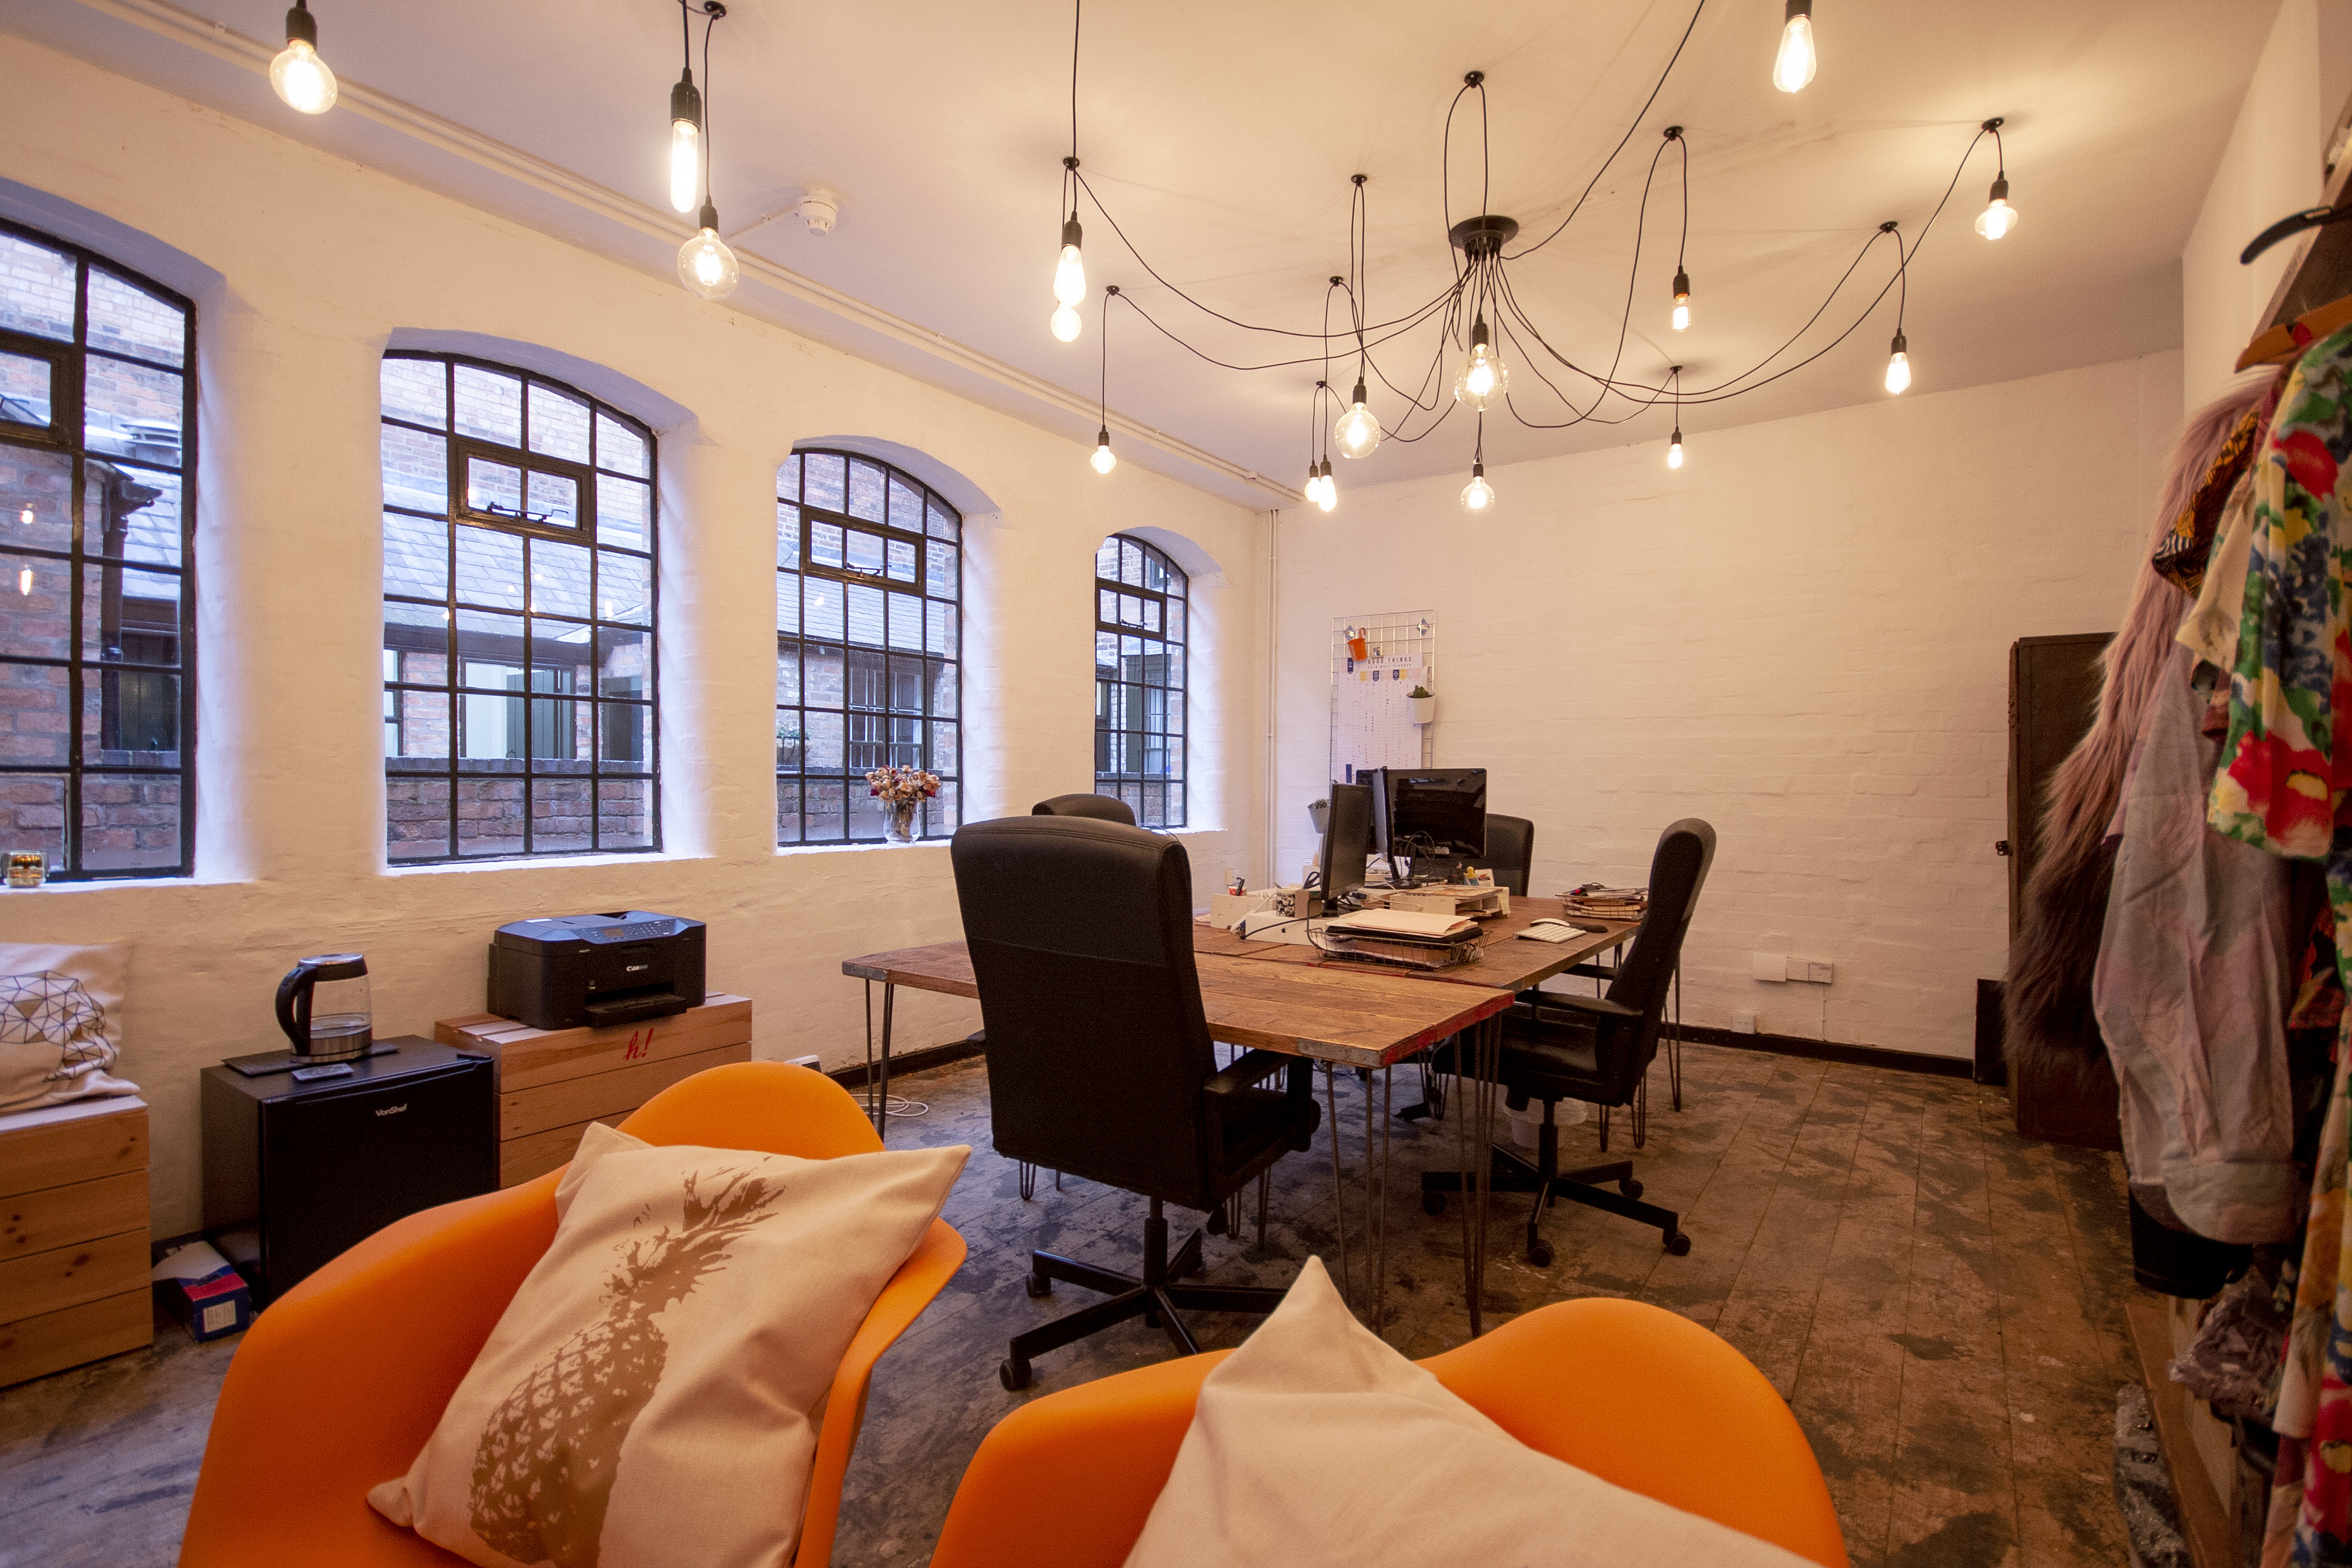 huzzah digital's jewellery quarter office